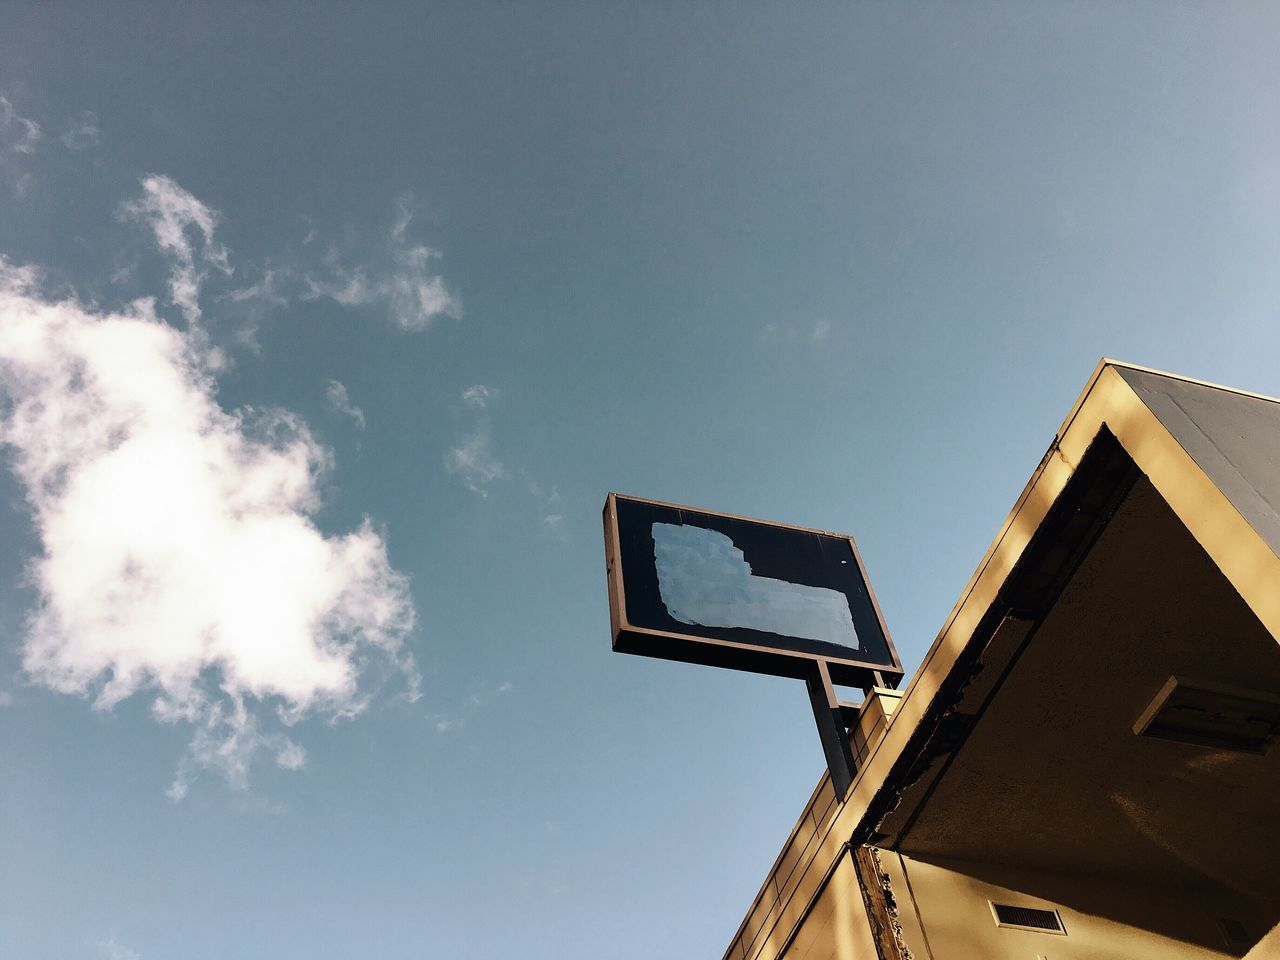 low angle view, sky, built structure, cloud - sky, day, outdoors, no people, communication, building exterior, architecture